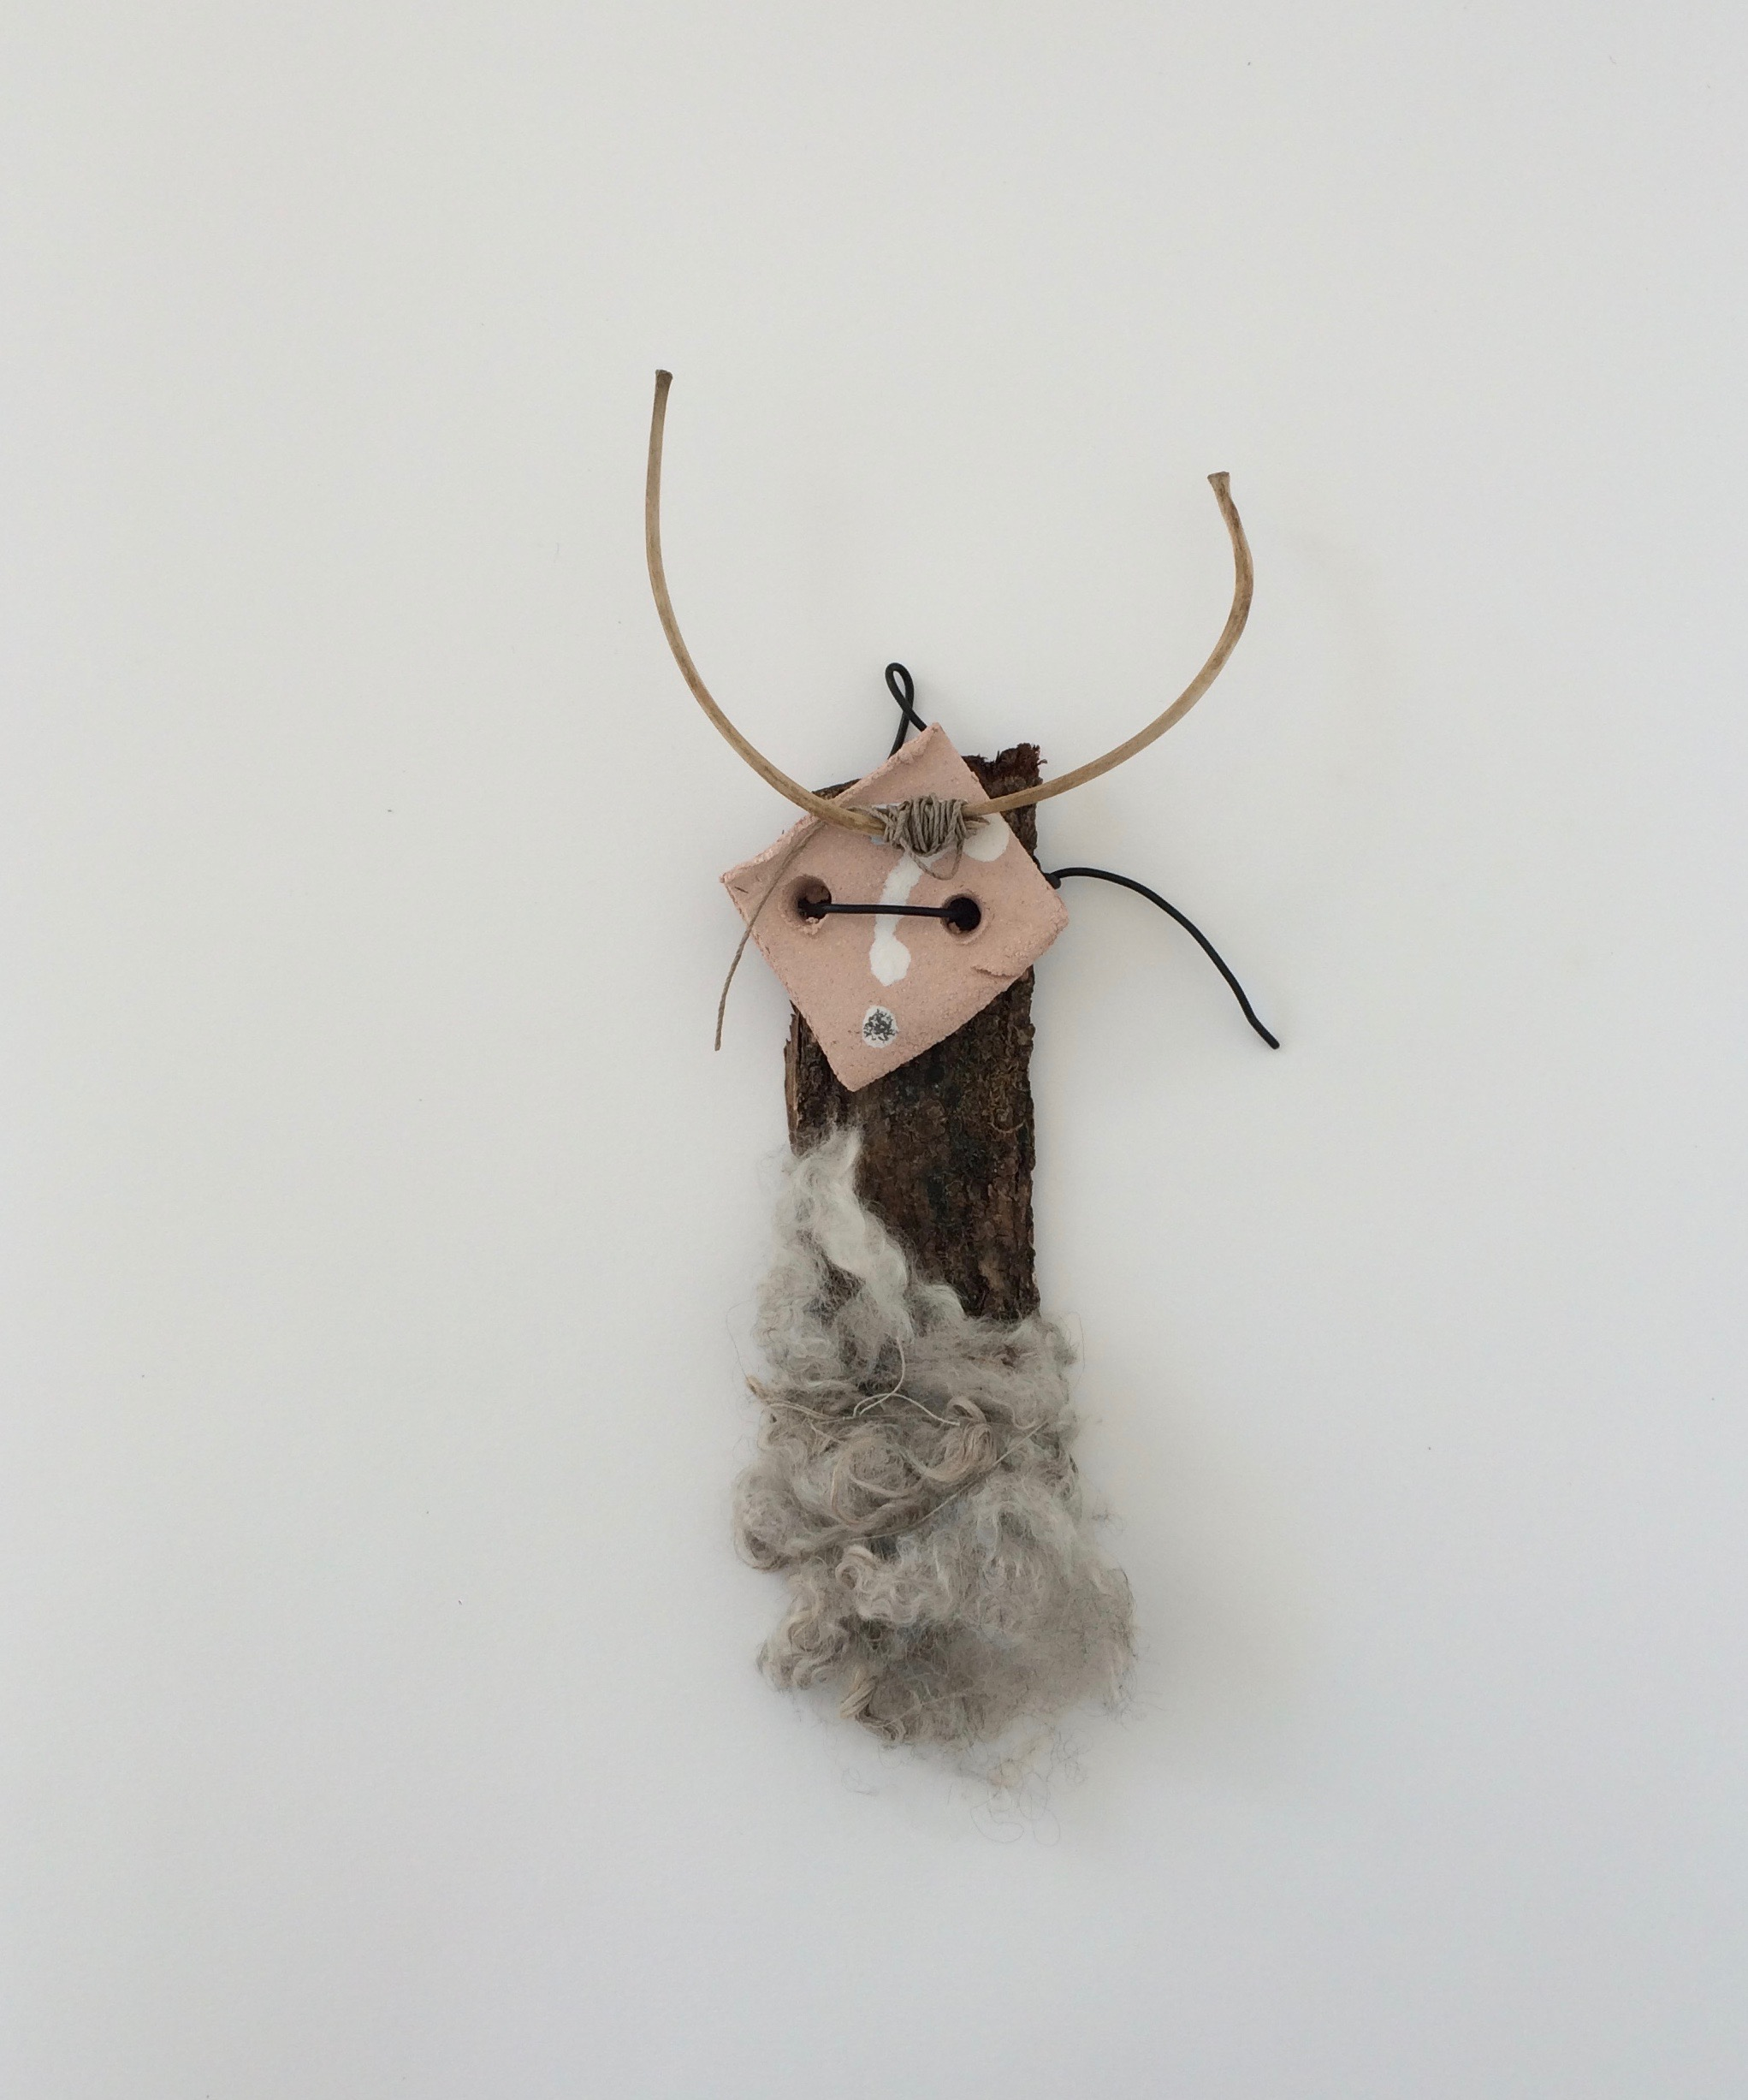 Night Rider,    2018 wood-bark, wool, clay, wool, string, feather h 33cm